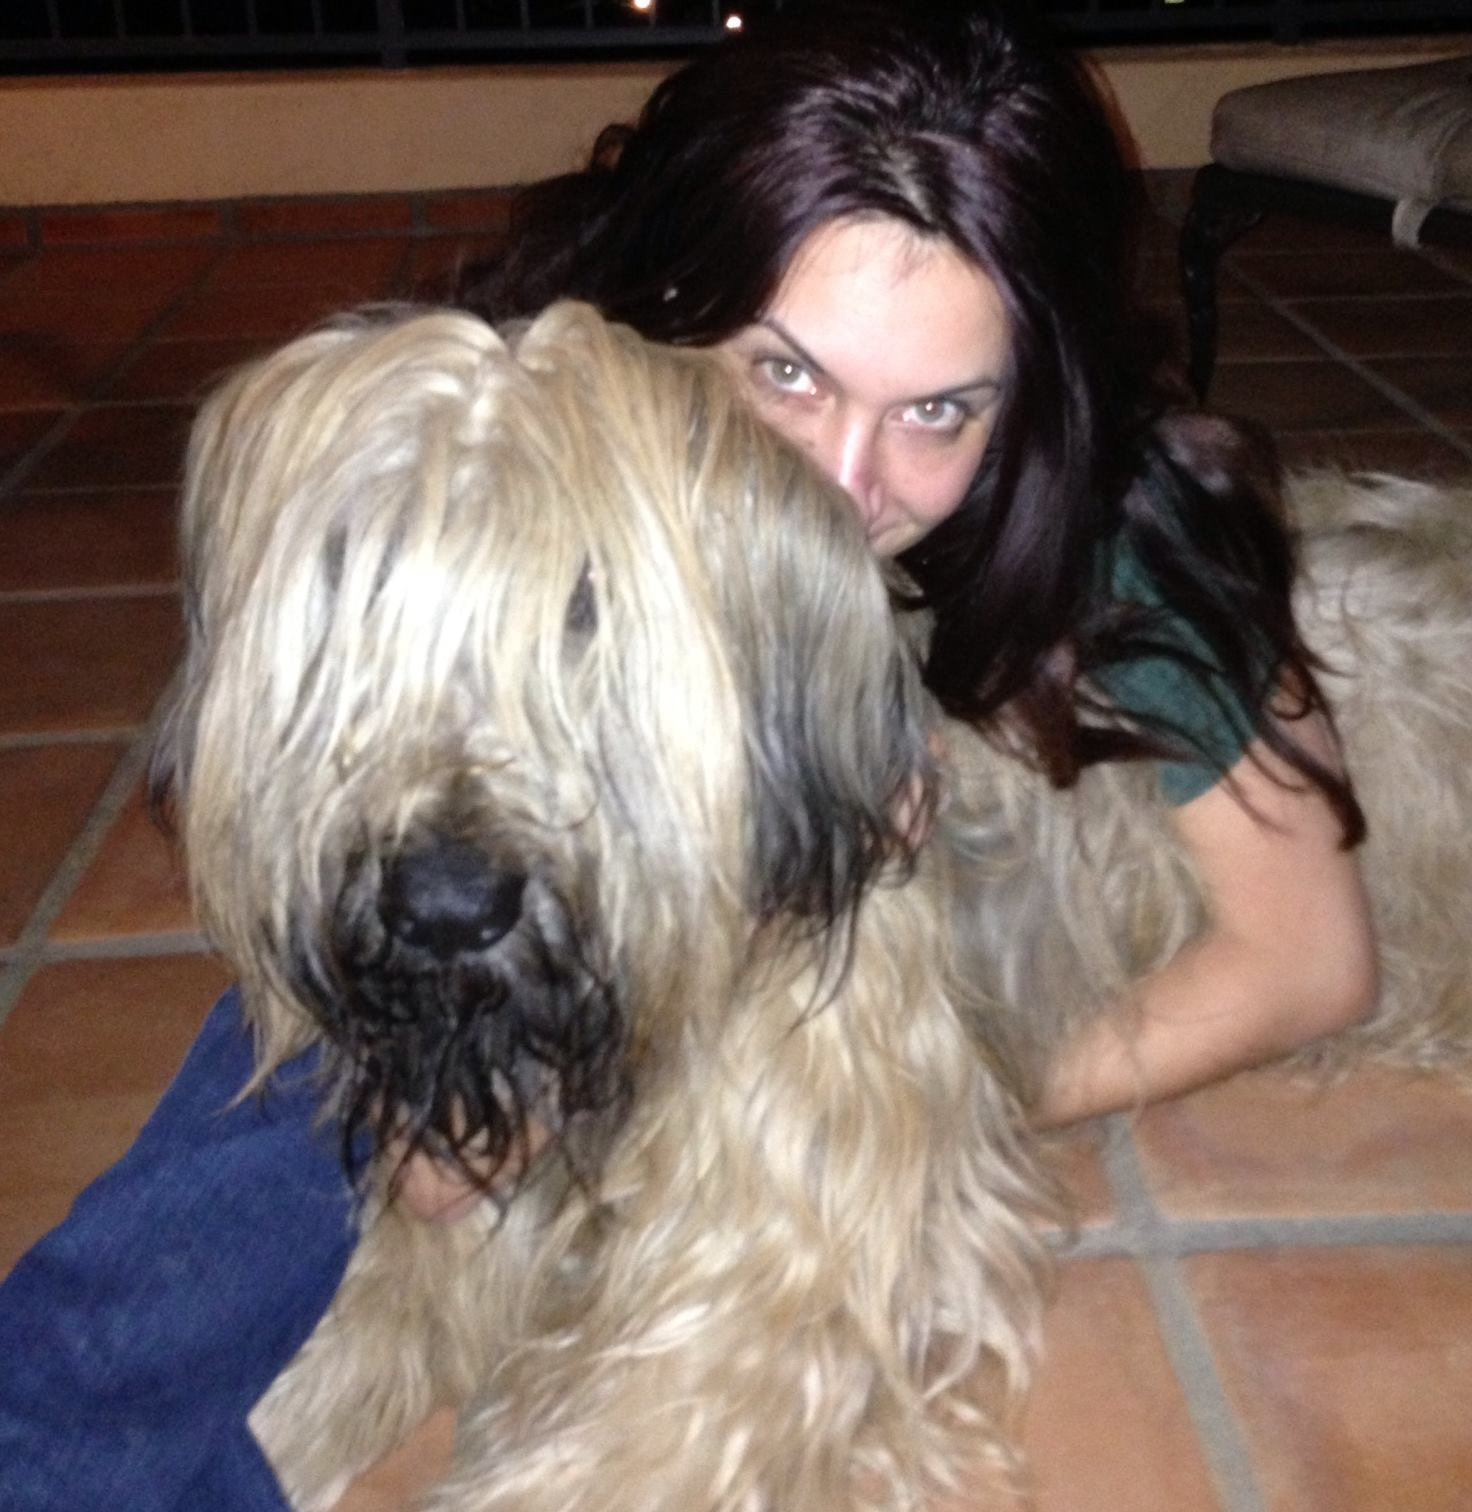 With Doobie, J's parents French Briard I love as much as our lab, Emma. Here in SB for Passover